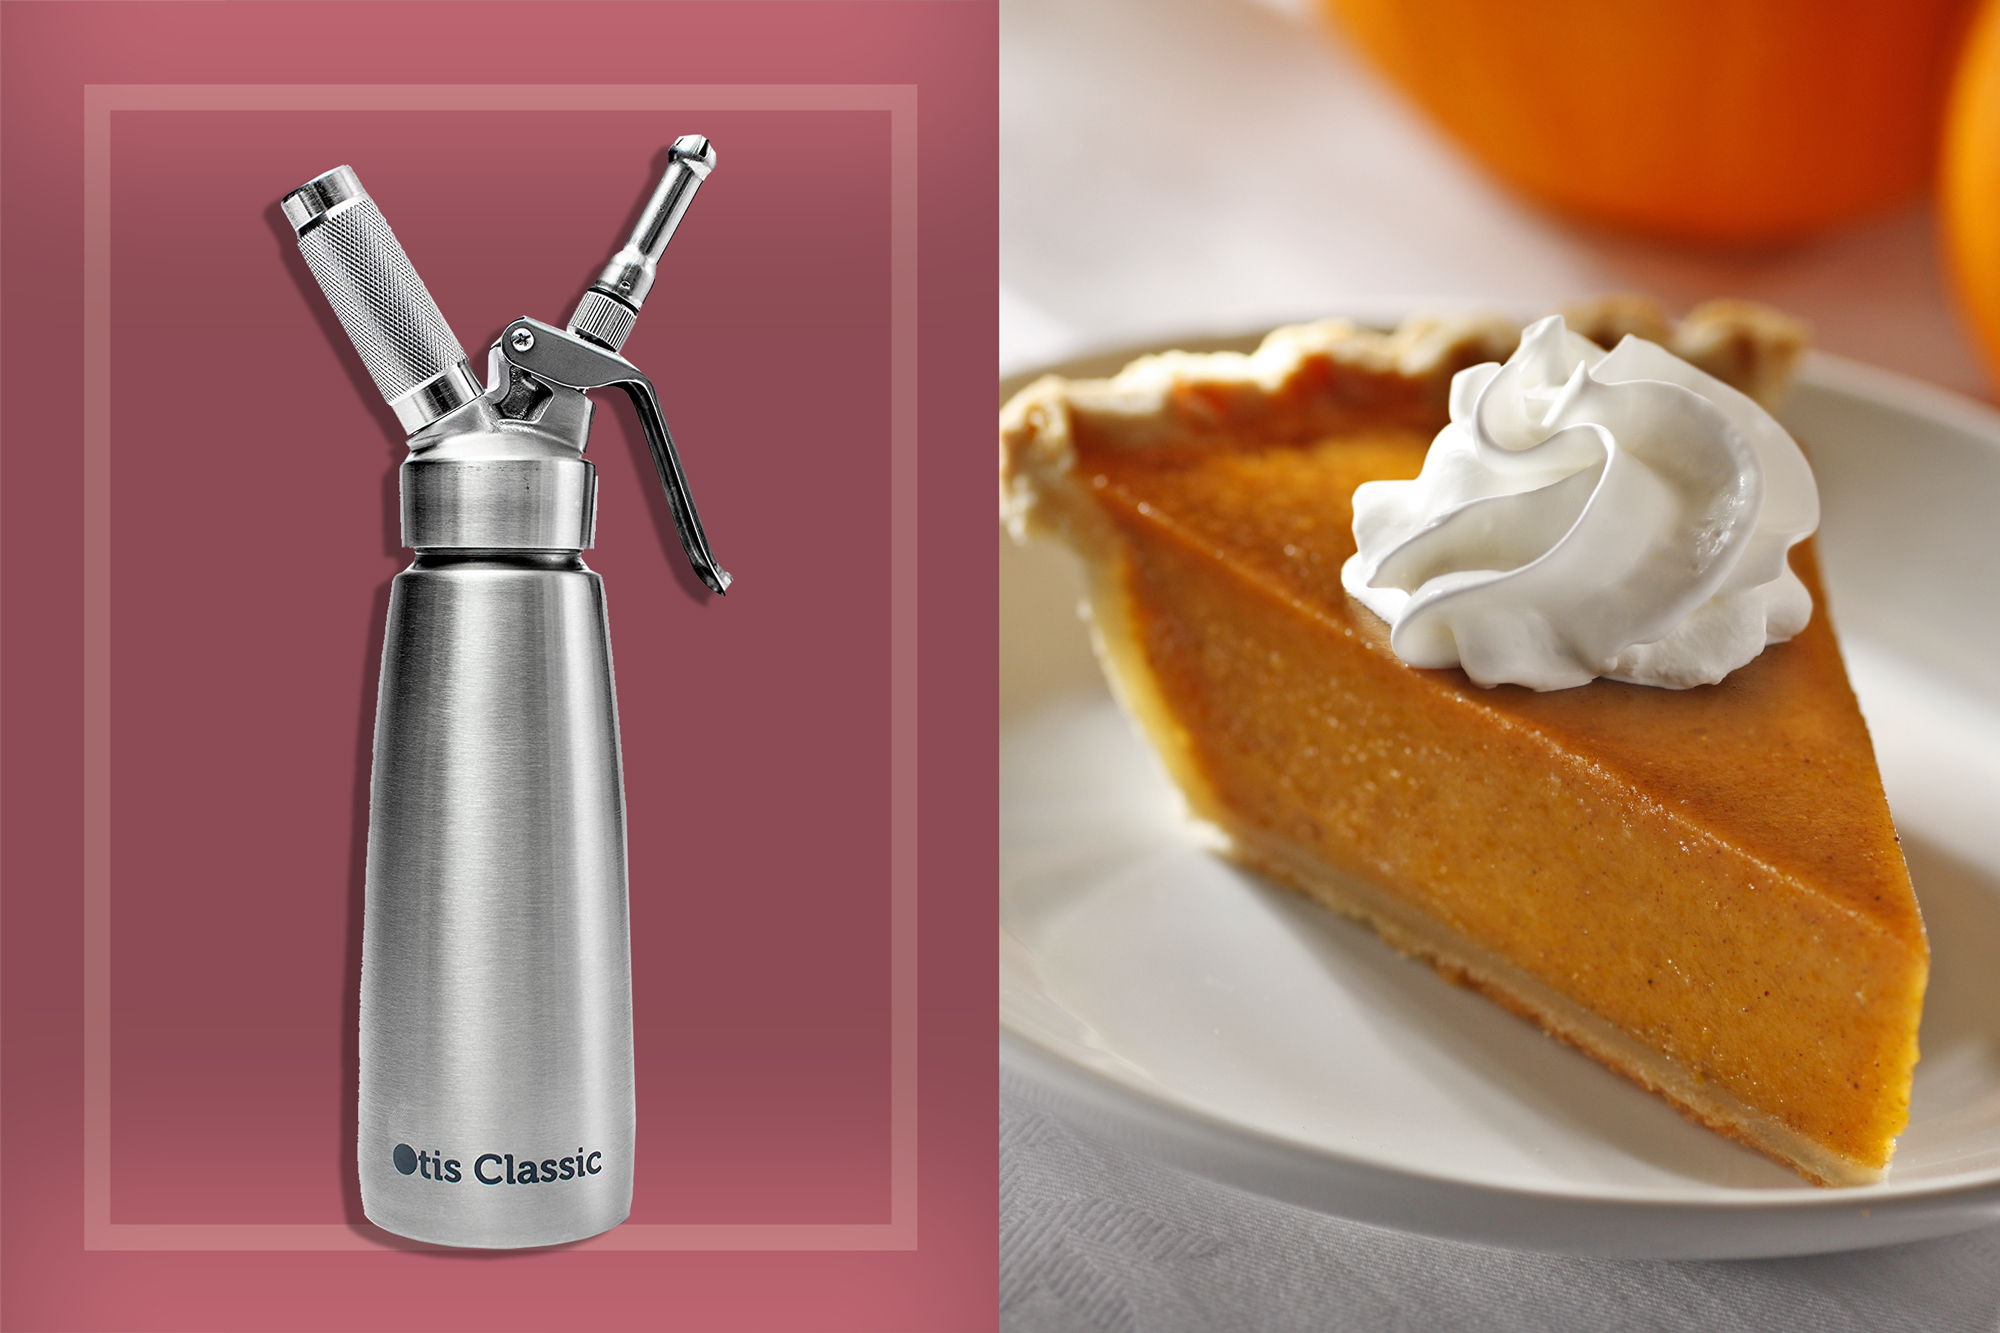 whipped cream dispenser and a slice of pumpkin pie with whipped cream on top